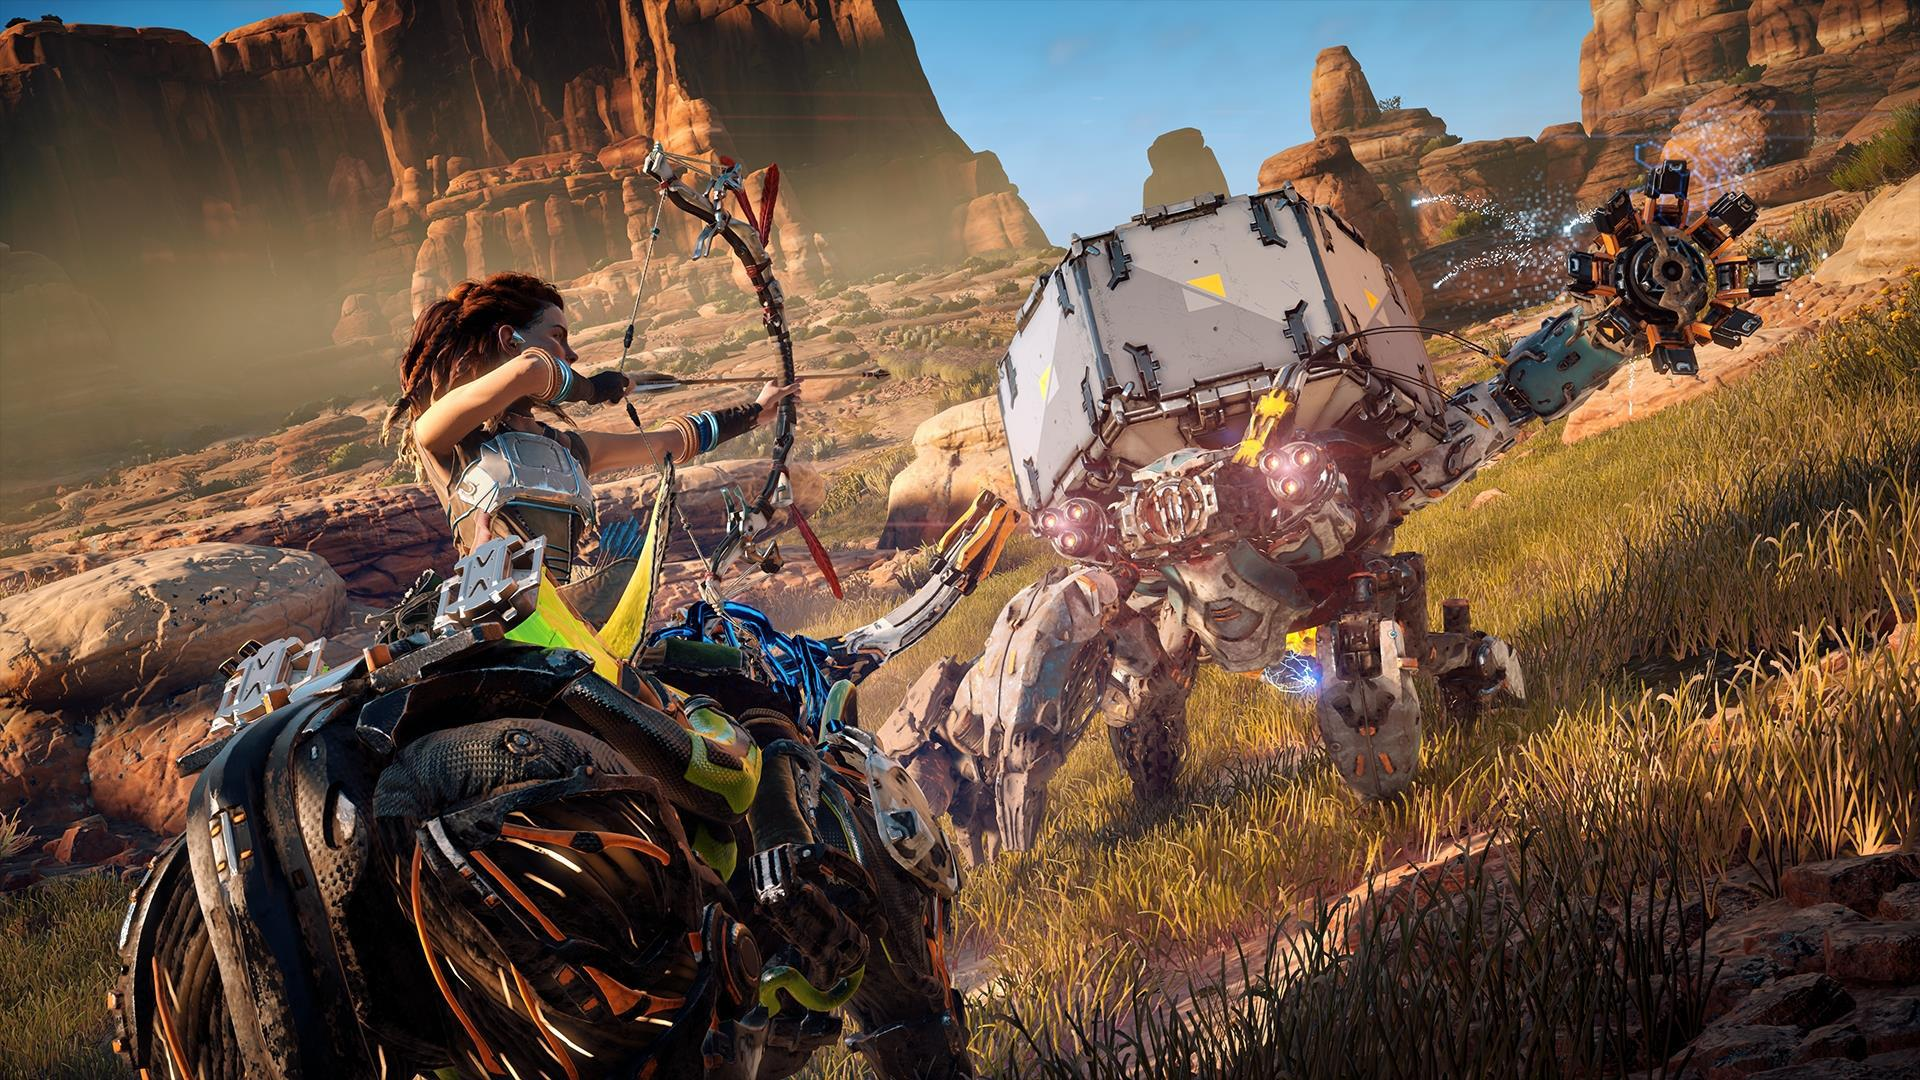 Horizon Zero Dawn is arguably the best-looking game ever made and is a wonderful showcase for Pro